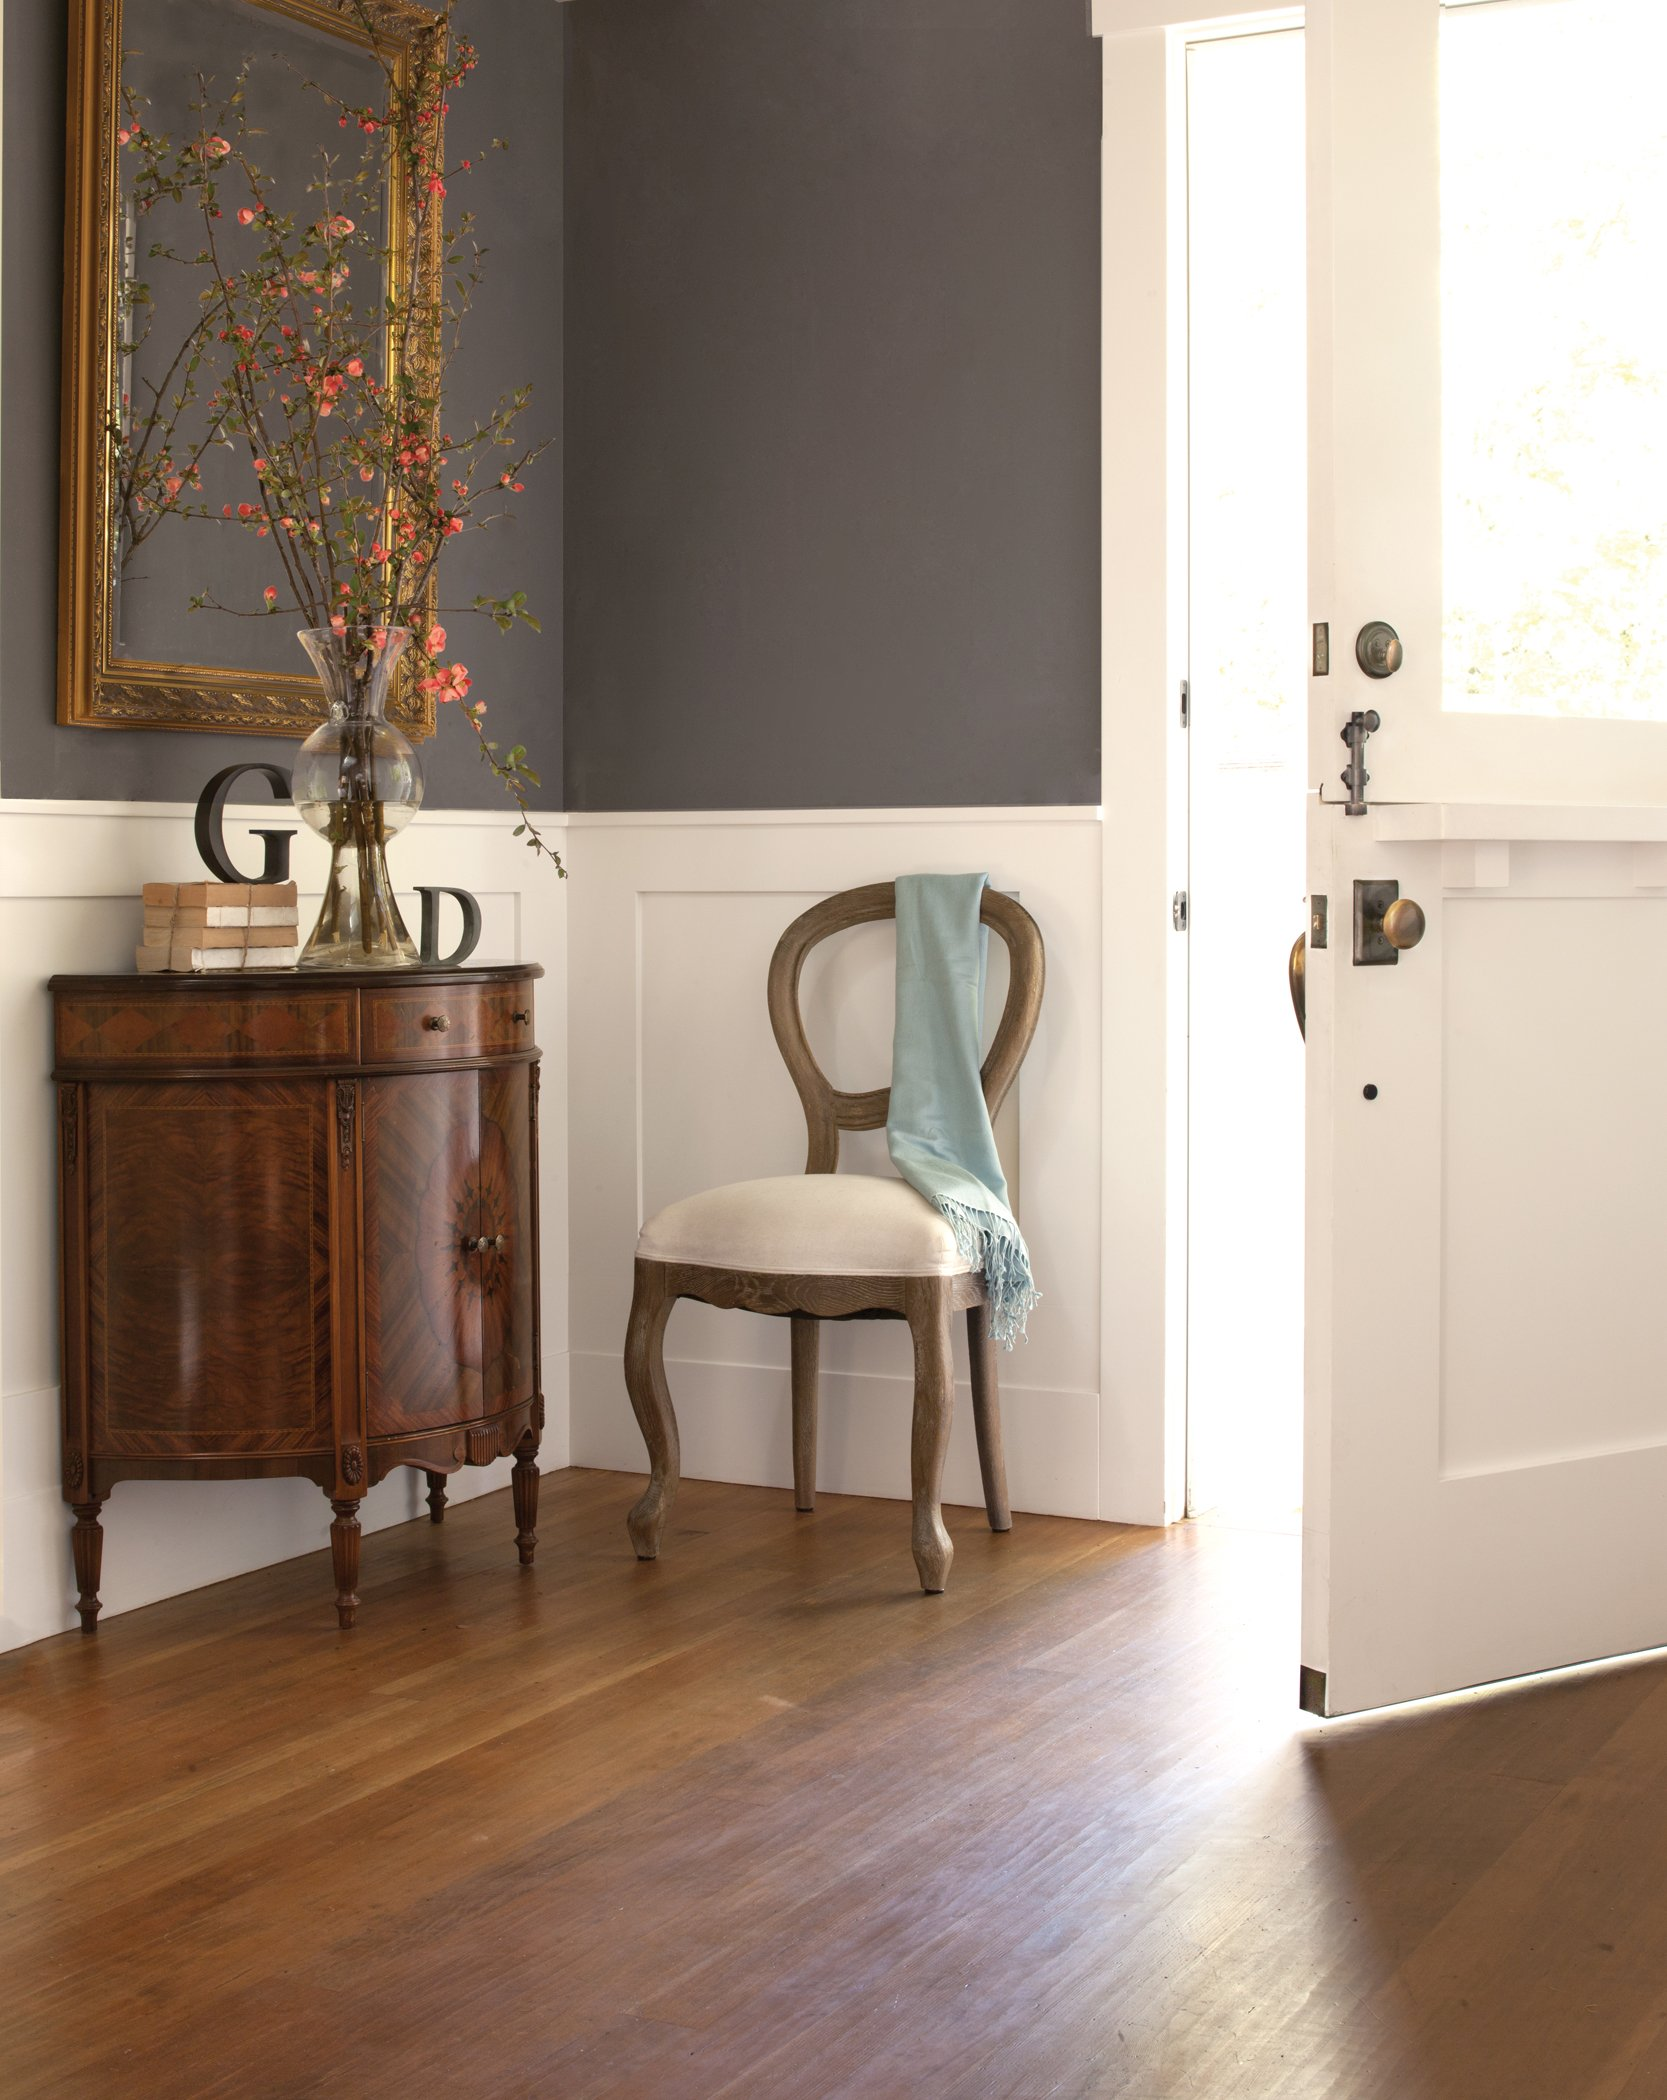 Interview with Paint Color Stylist Mary Lawlor from KellyMoore